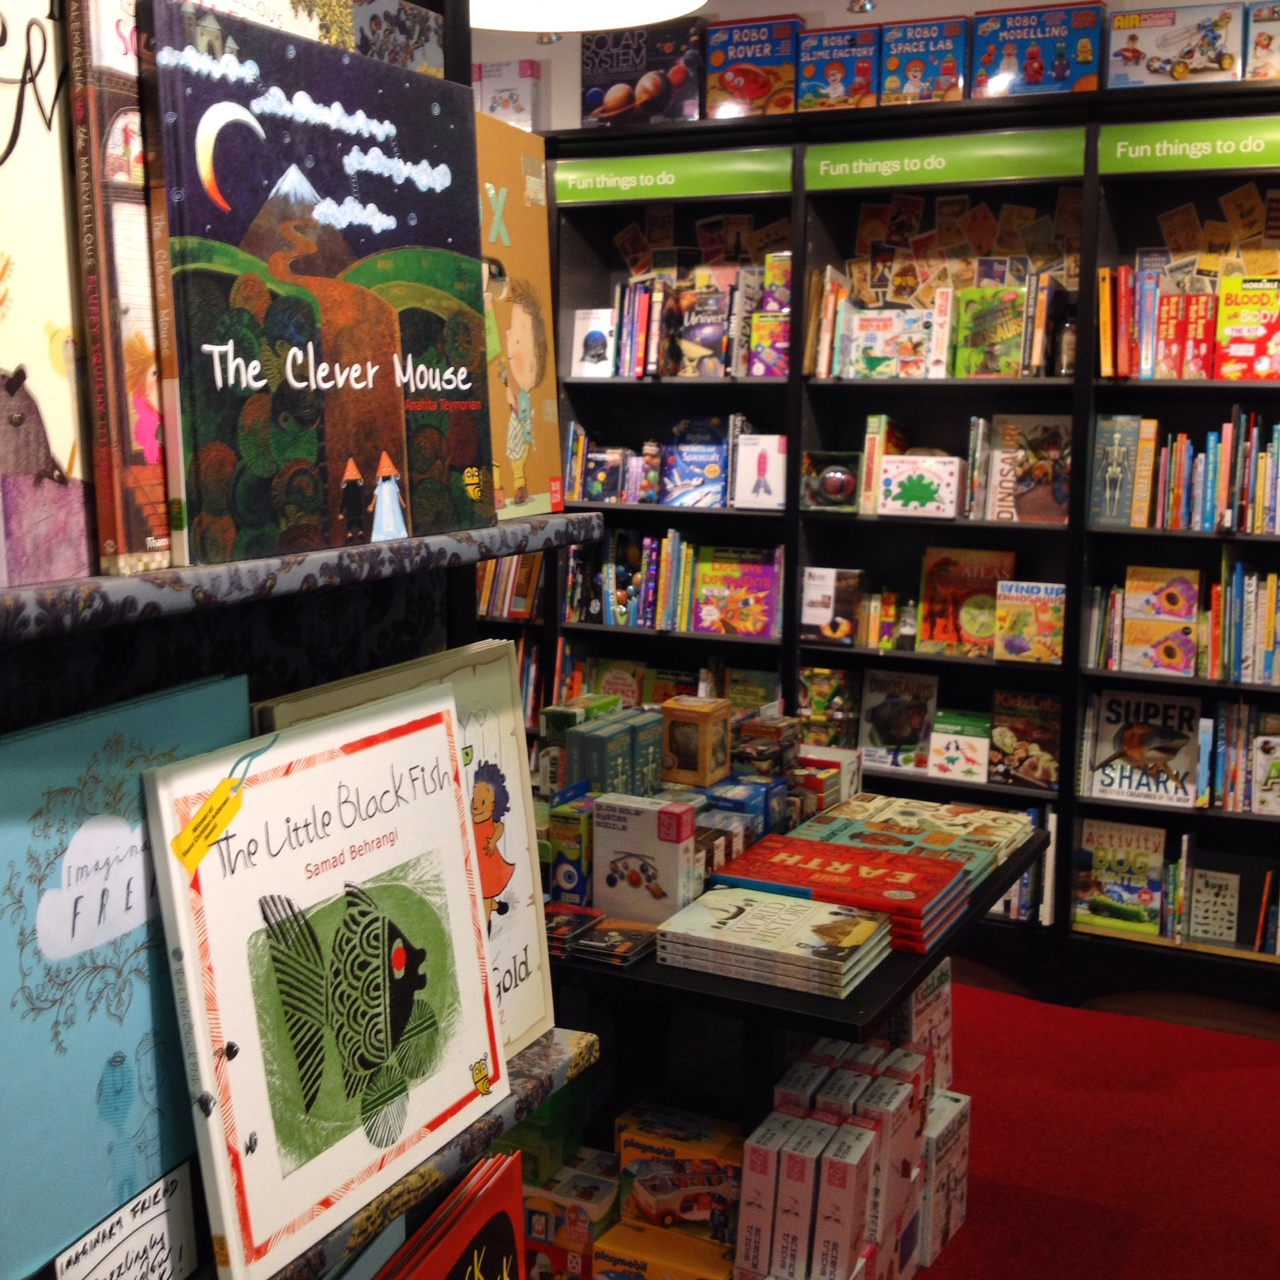 Tiny owl books in Waterstones